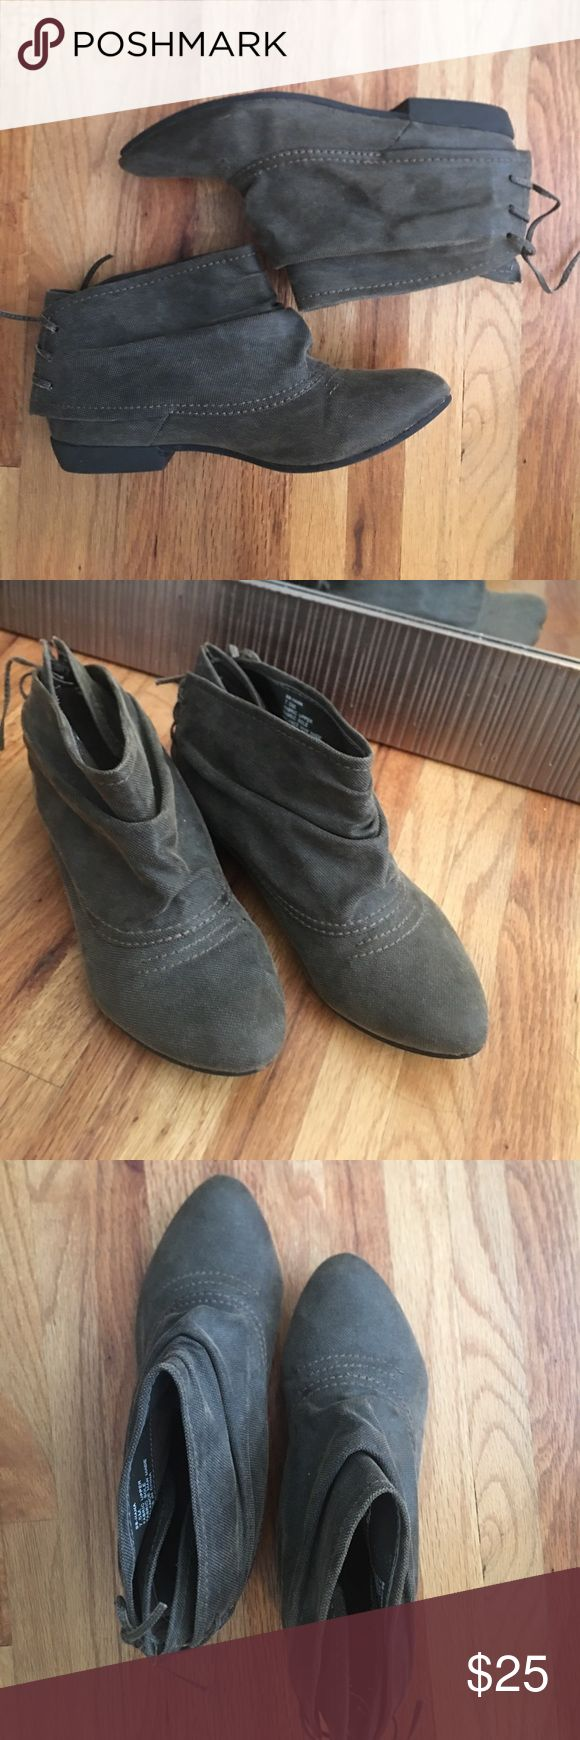 Big Buddha booties! Brown/grey, flat booties with semi pointed toe. Causal and comfy. Big Buddha Shoes Ankle Boots & Booties